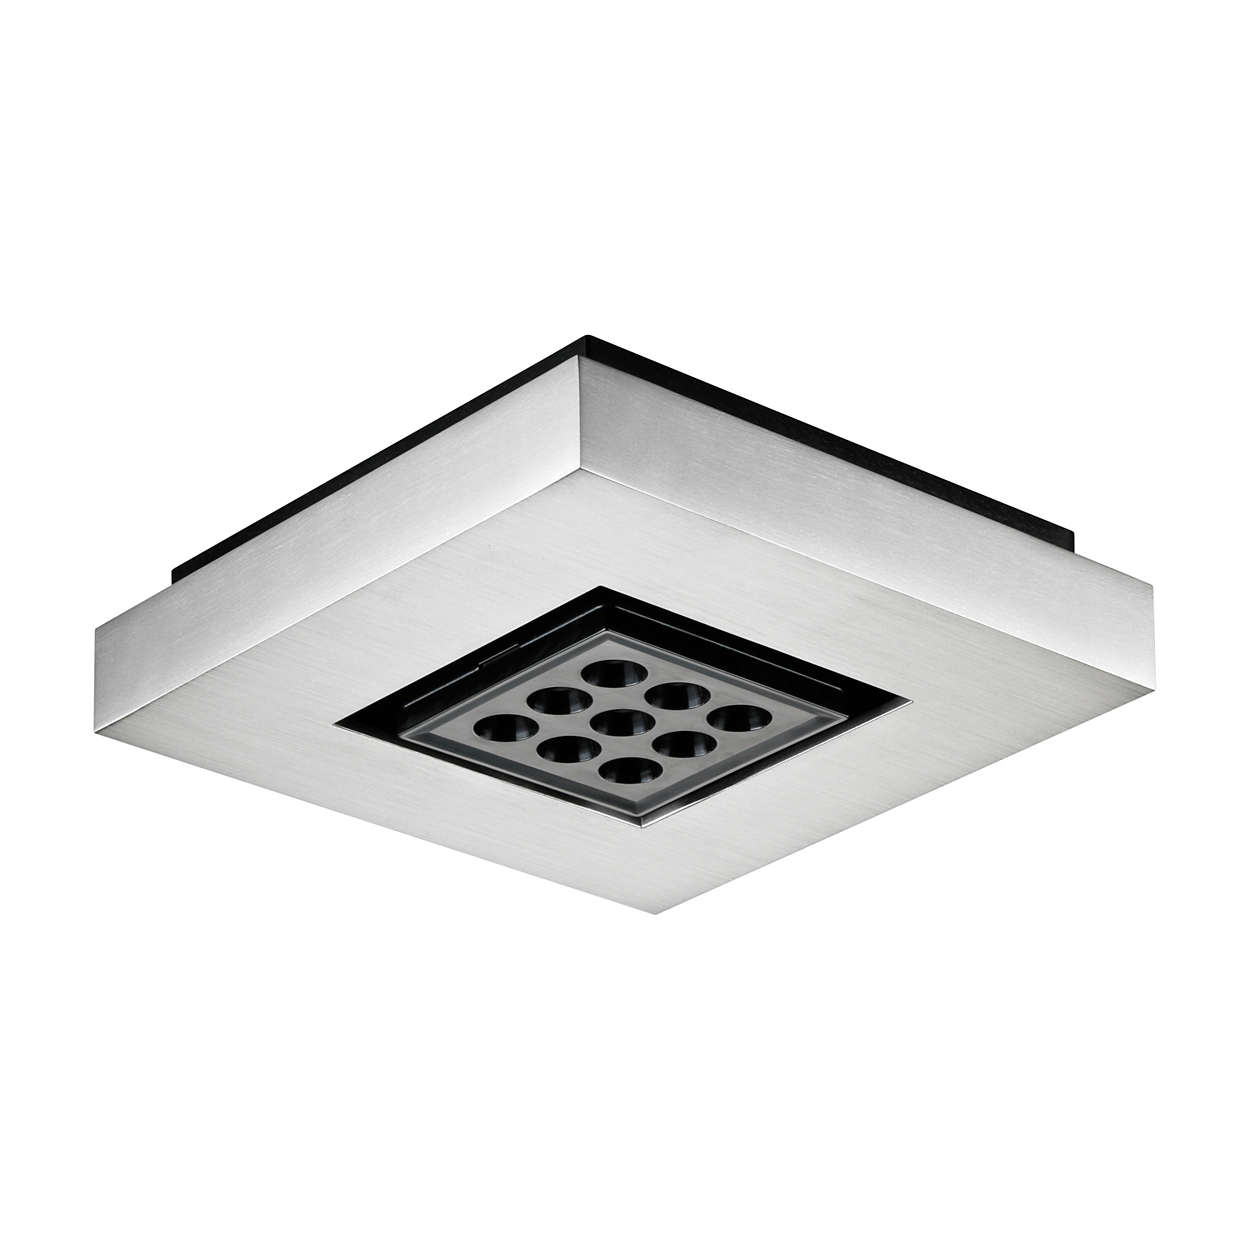 eW Downlight Powercore: downlight LED de alta eficiencia energética